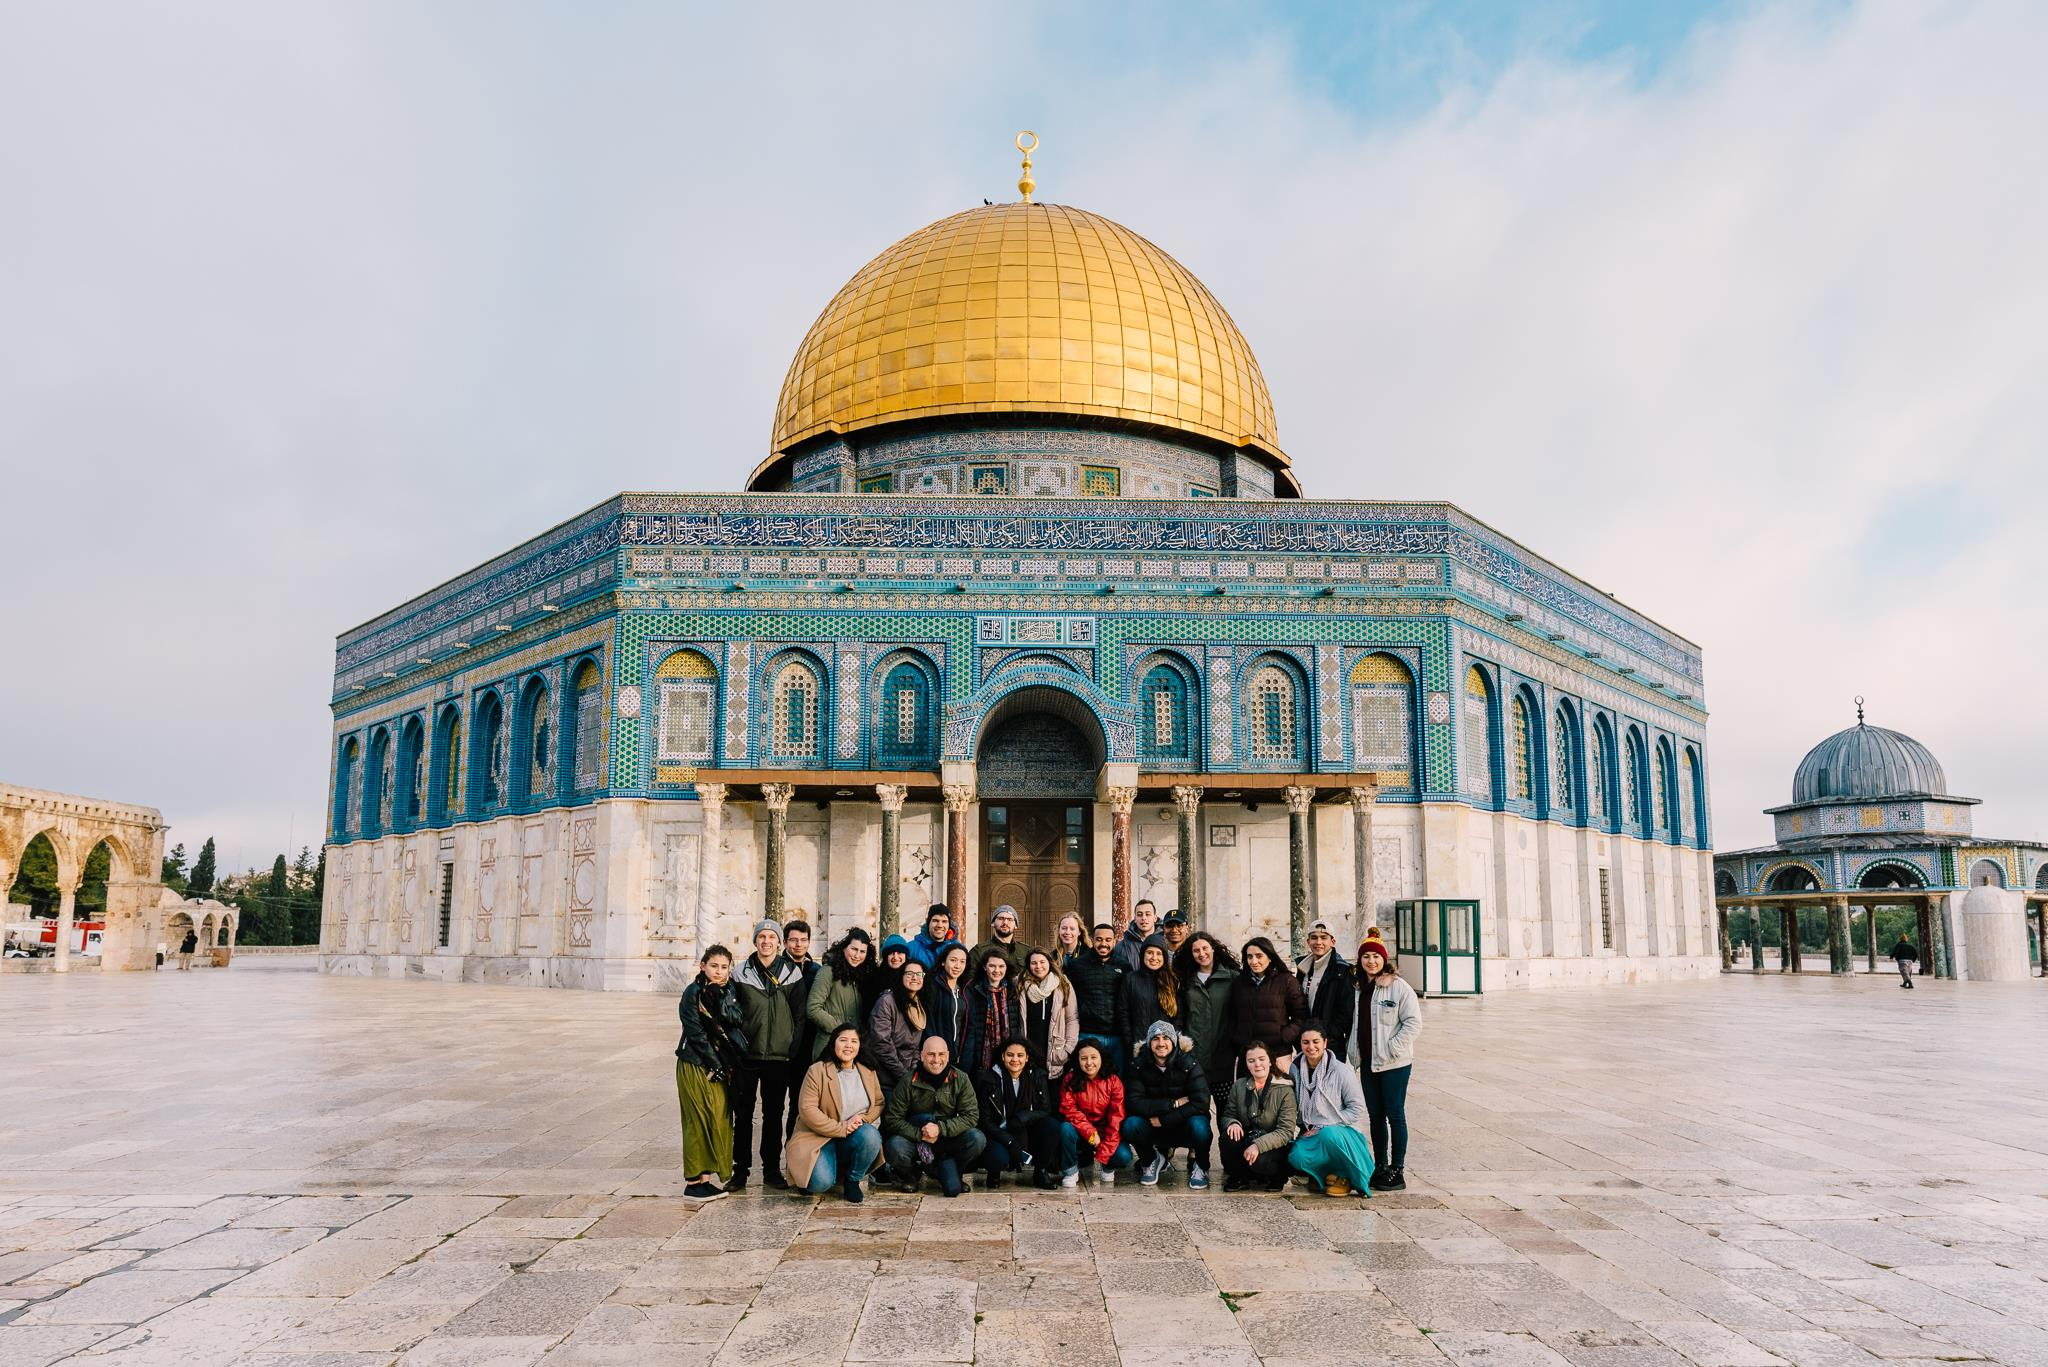 Students on Israel Uncovered visited numerous religious sites, including Mount of Beatitudes, the Western Wall, and the Temple Mount.